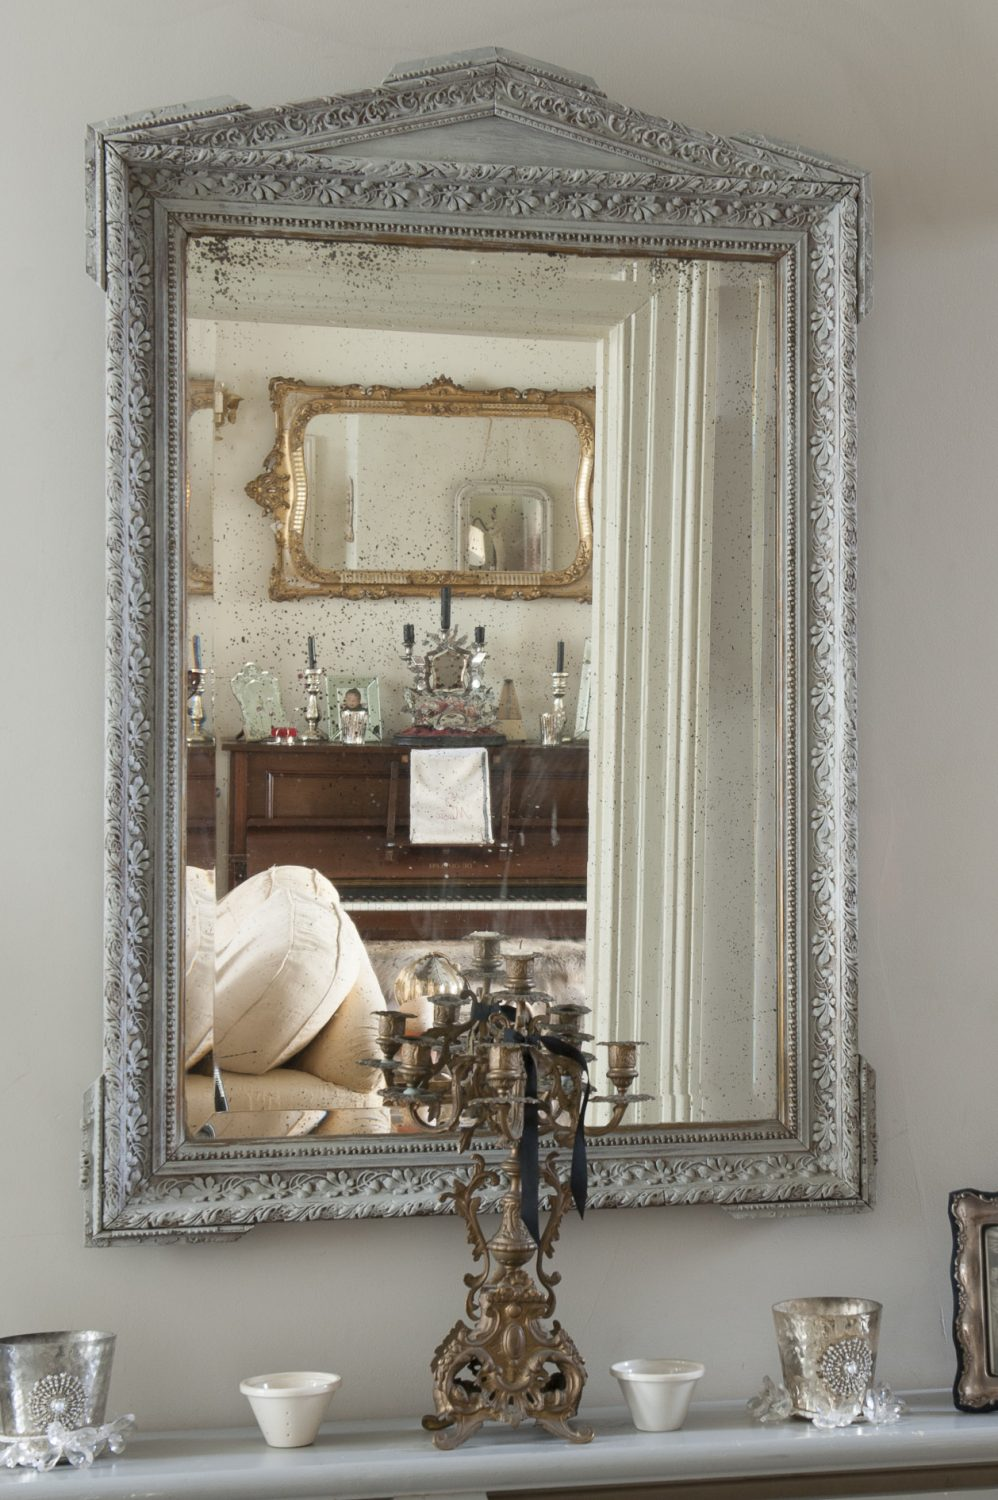 Antique mirrors are a prominent feature of Minnie's home